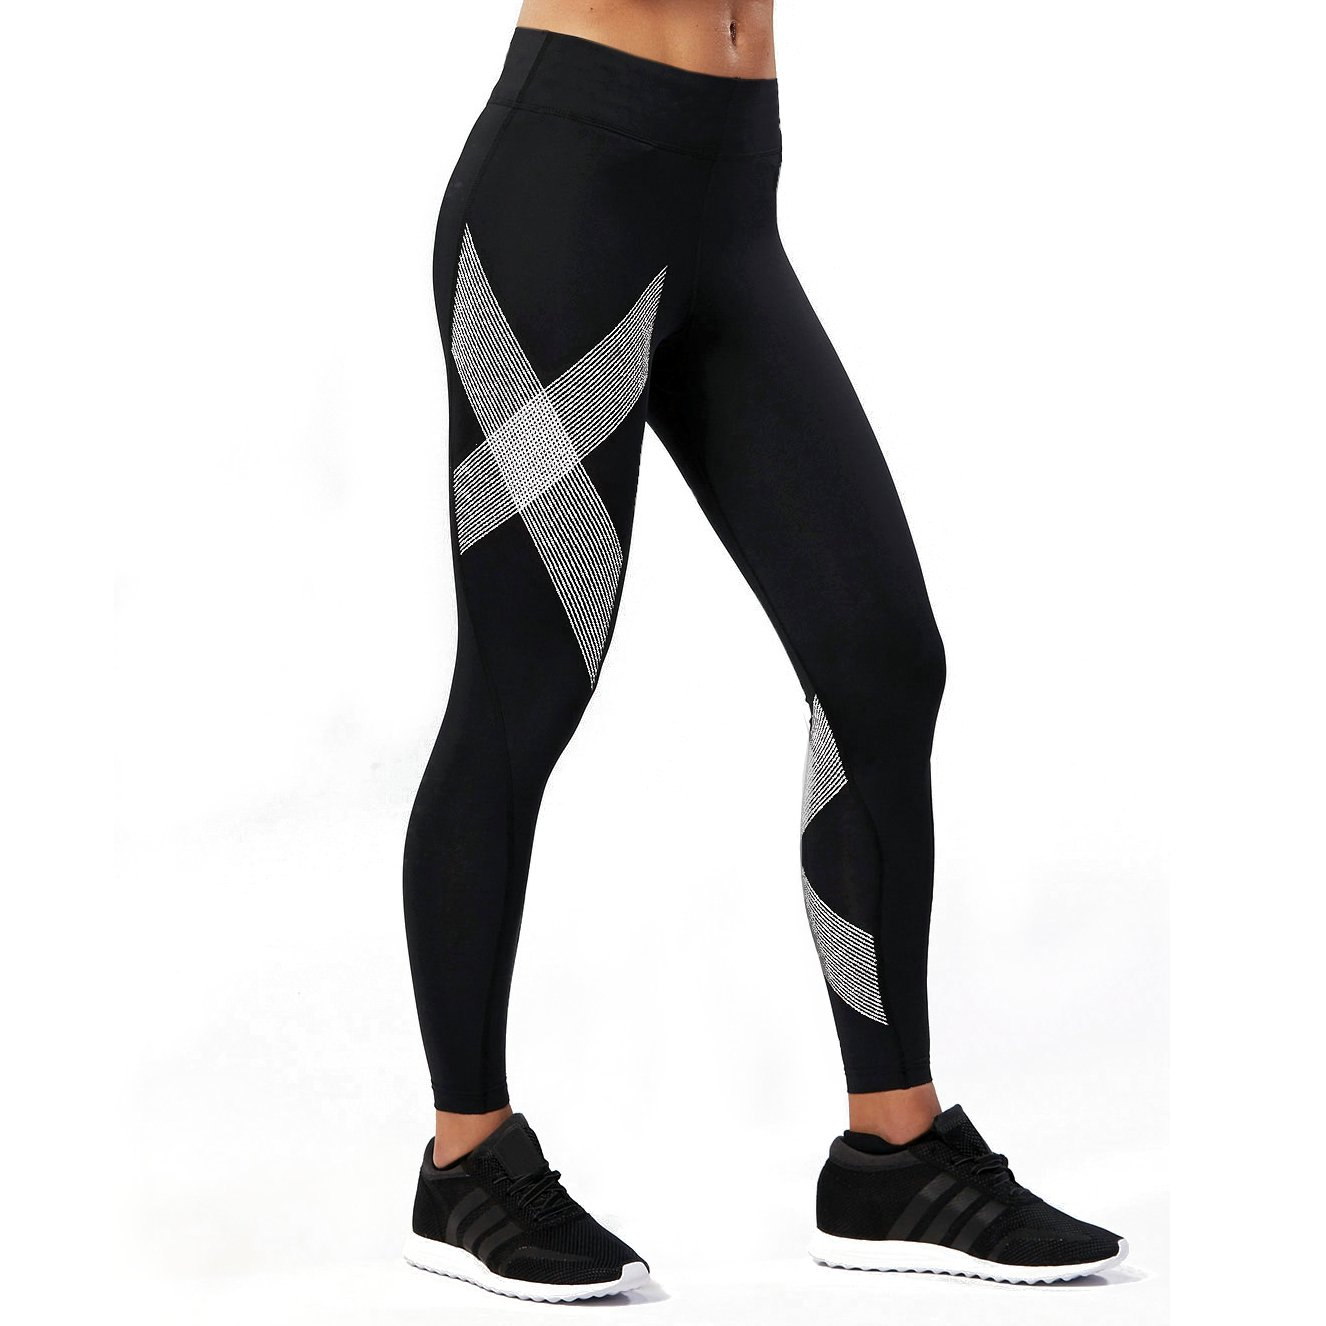 2XU Women's Mid-Rise Compression Tights, Black/Striped White, X-Small by 2XU